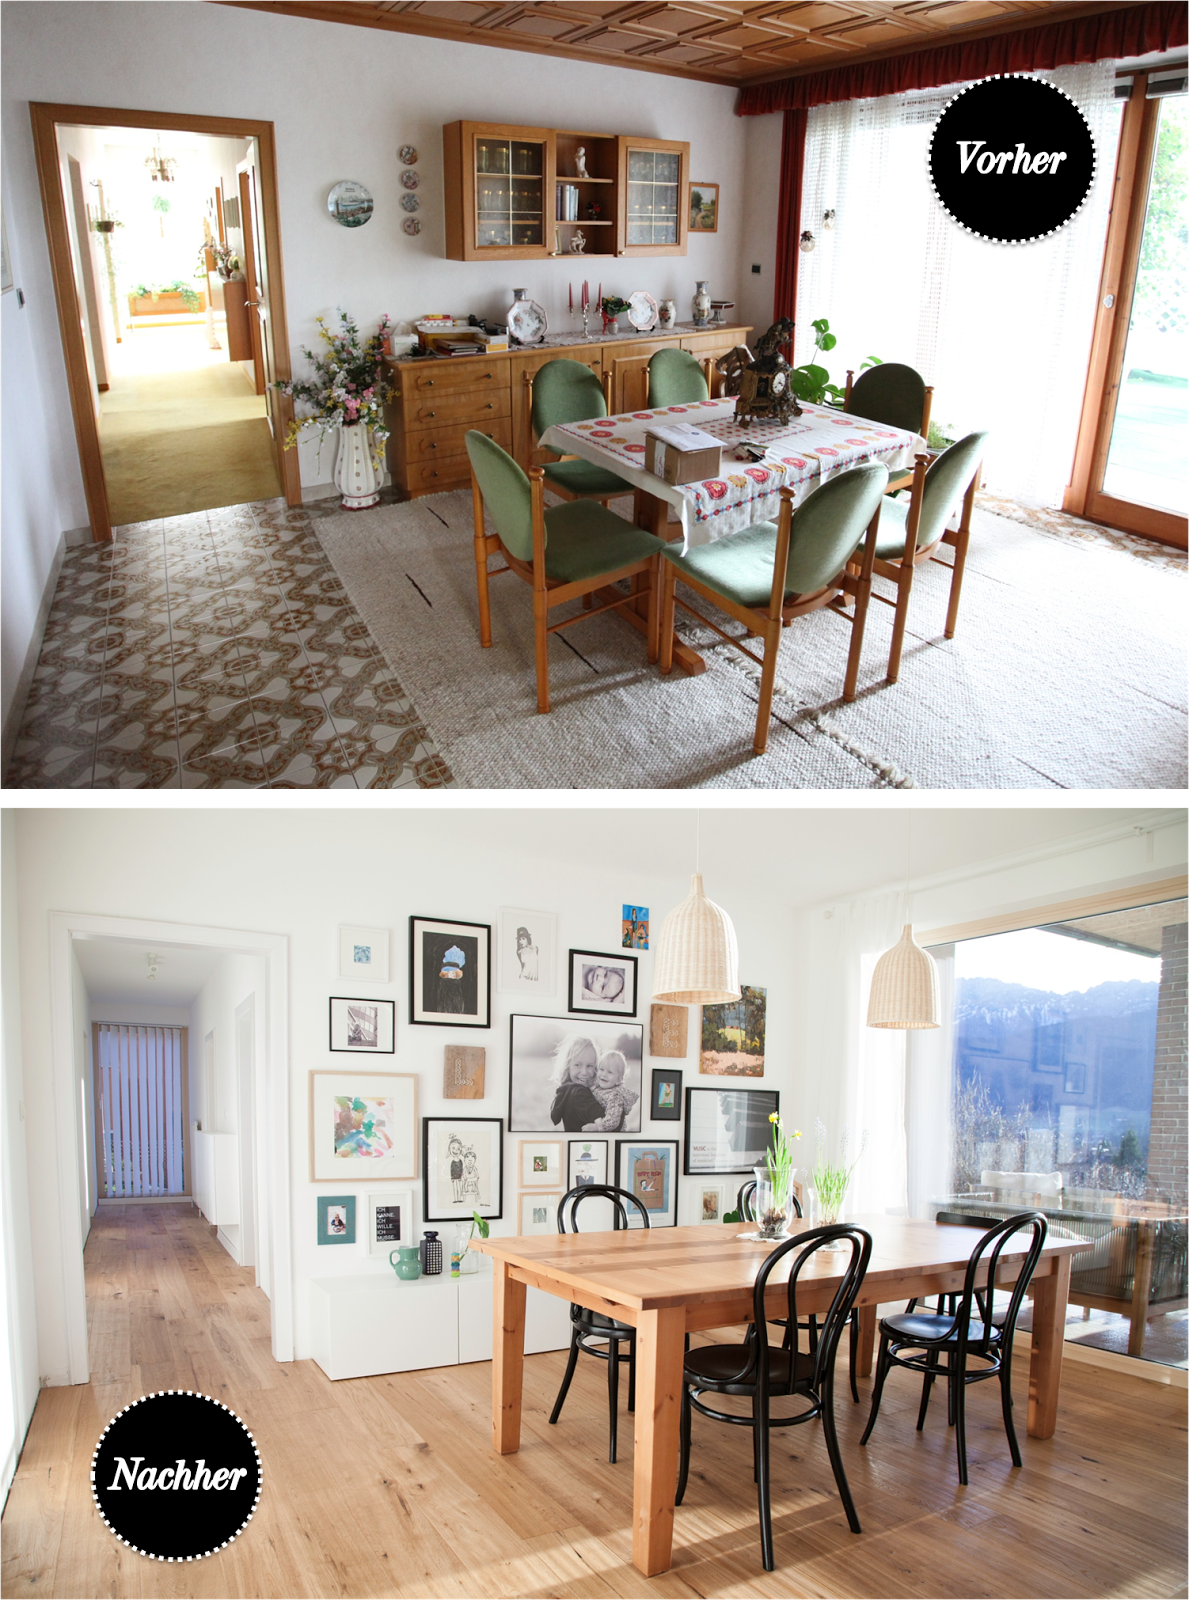 Before and after: dining room | WOHN:PROJEKT - der Mama Tochter Blog ...